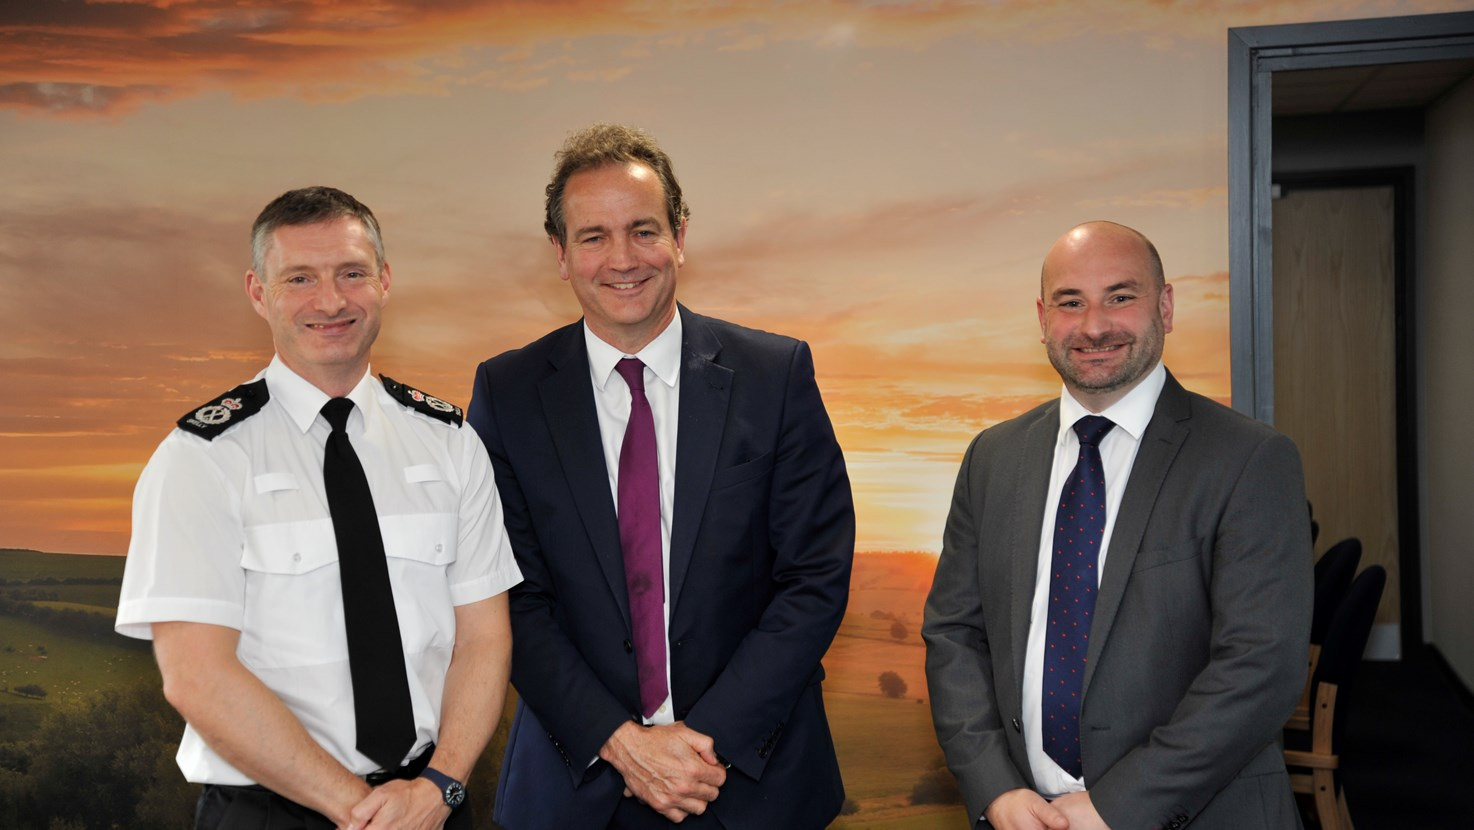 L-R CC Bill Skelly, Policing Minister Nick Hurd and PCC Marc Jones